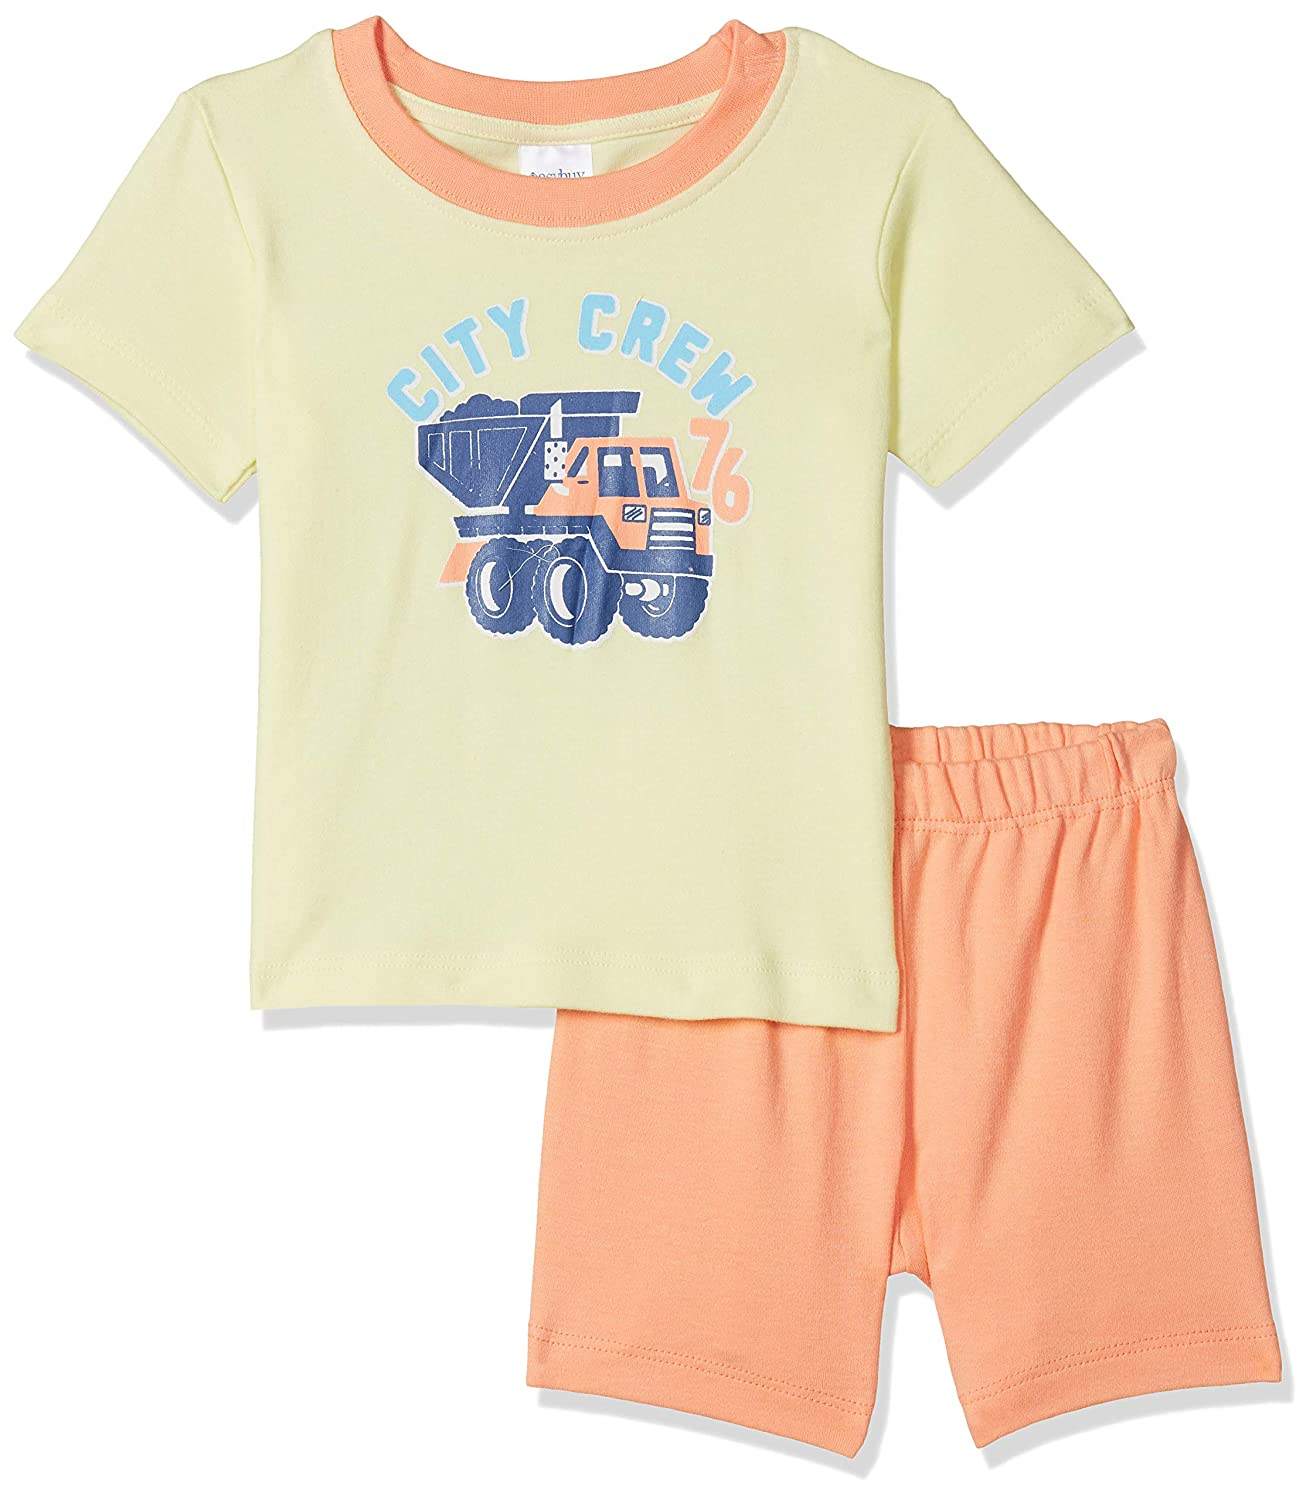 Easybuy Infants coordinates – 3 to 6 months